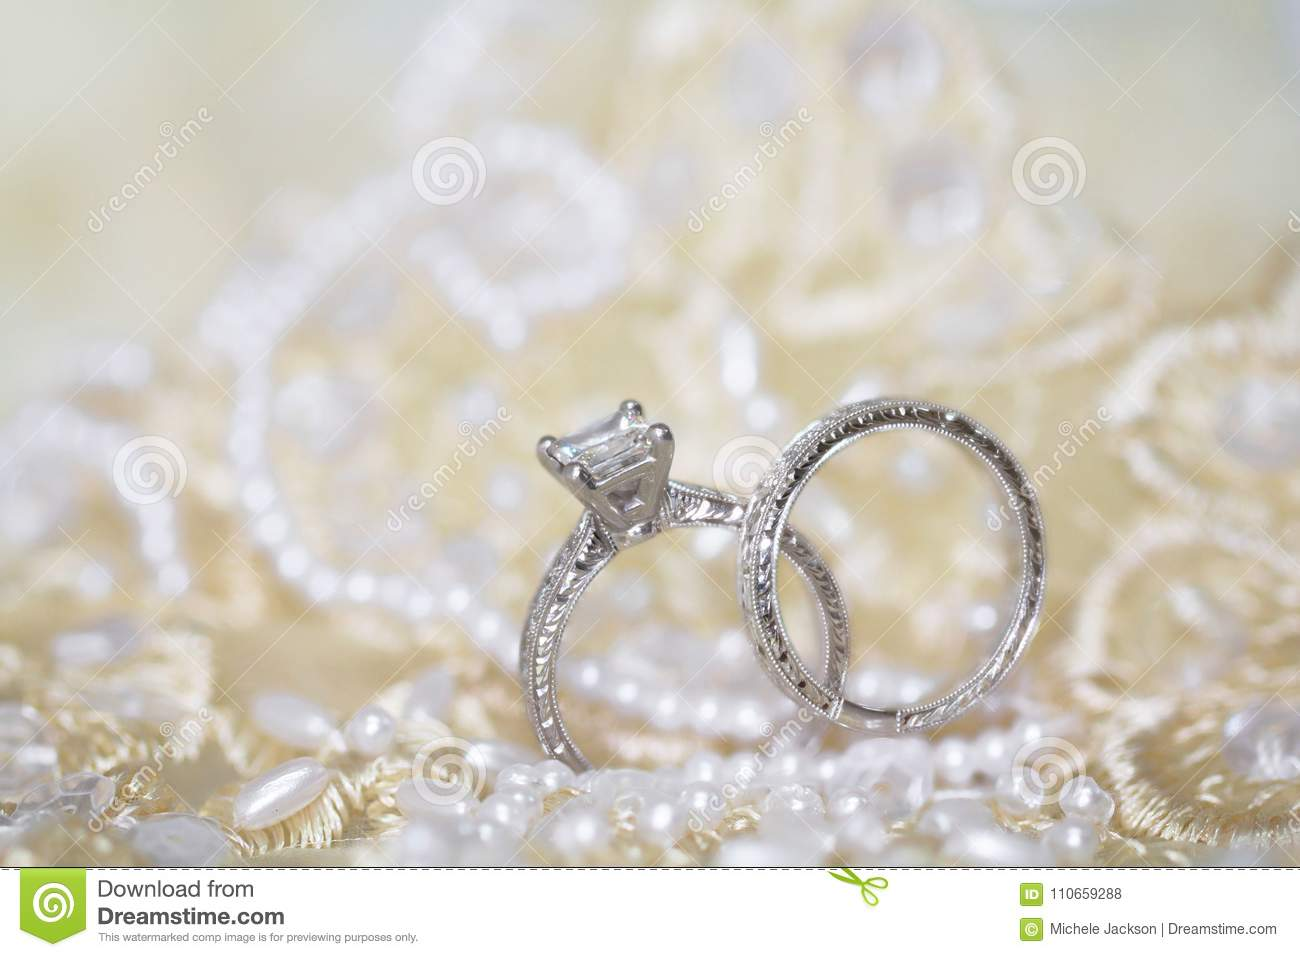 that ring rings your so main might are stunning weddings wedding jealous pretty get gallery engagement band